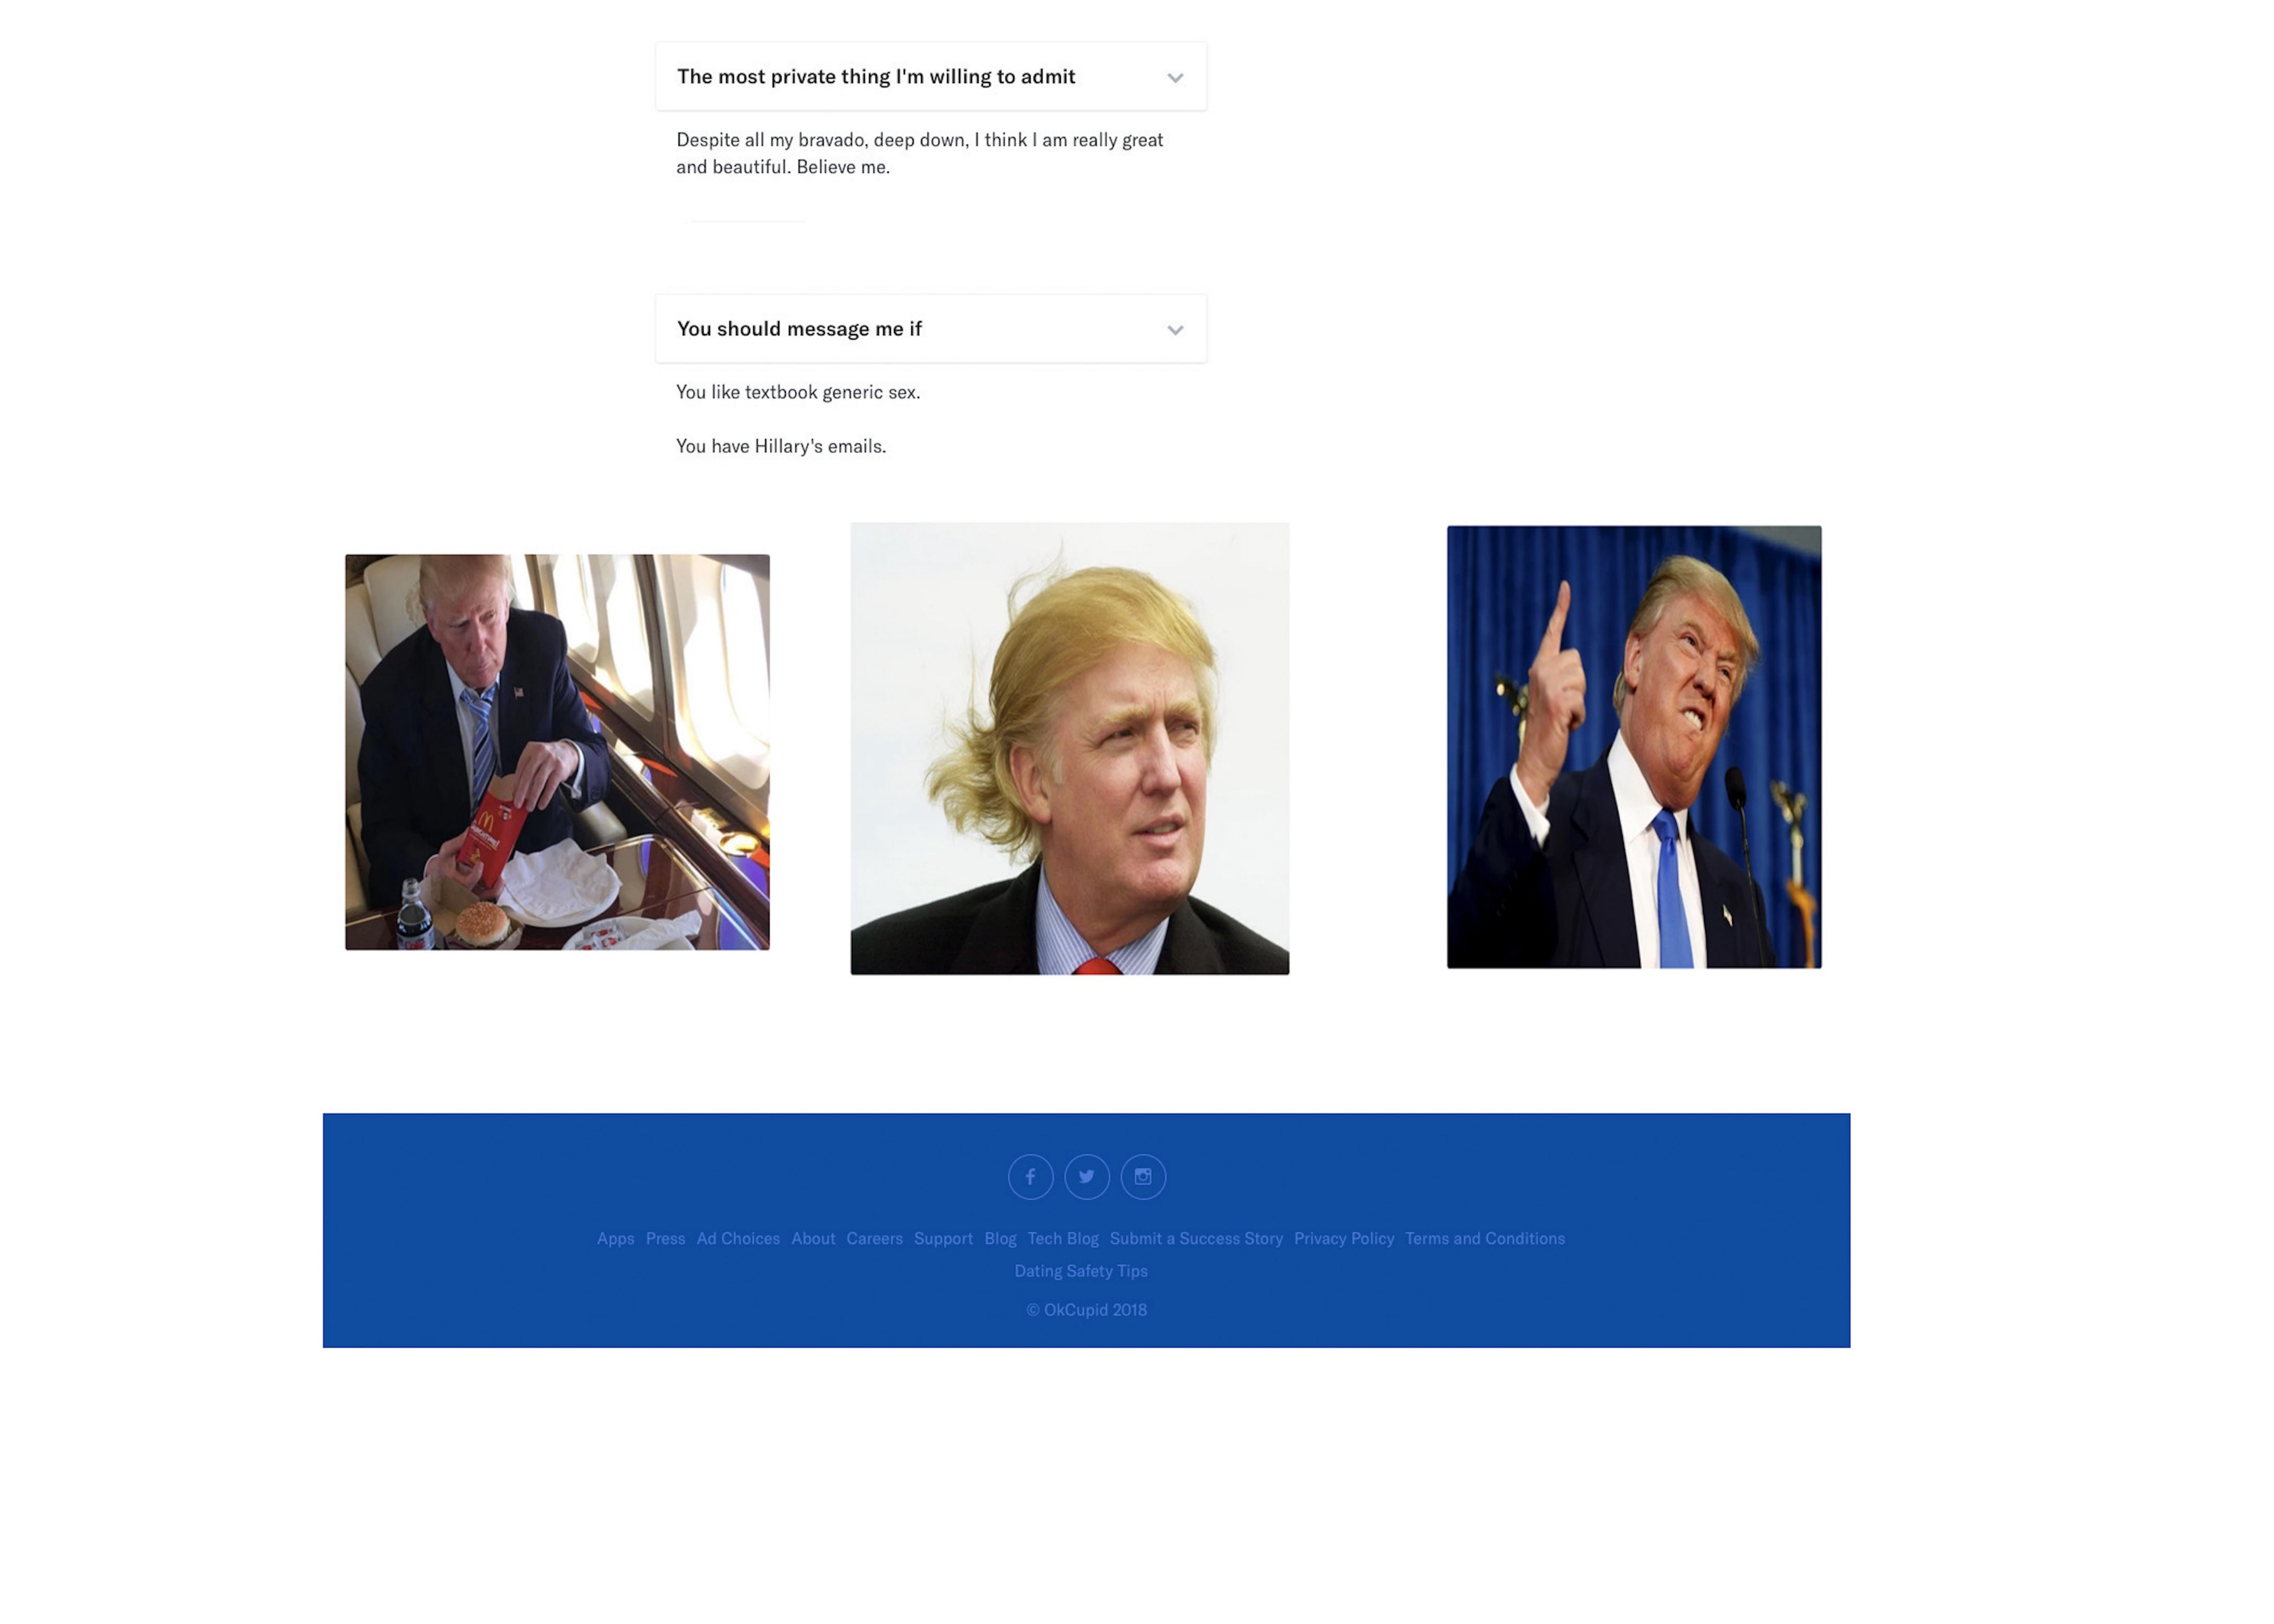 Breaking: Donald Trump's OKCupid Profile Discovered and Revealed